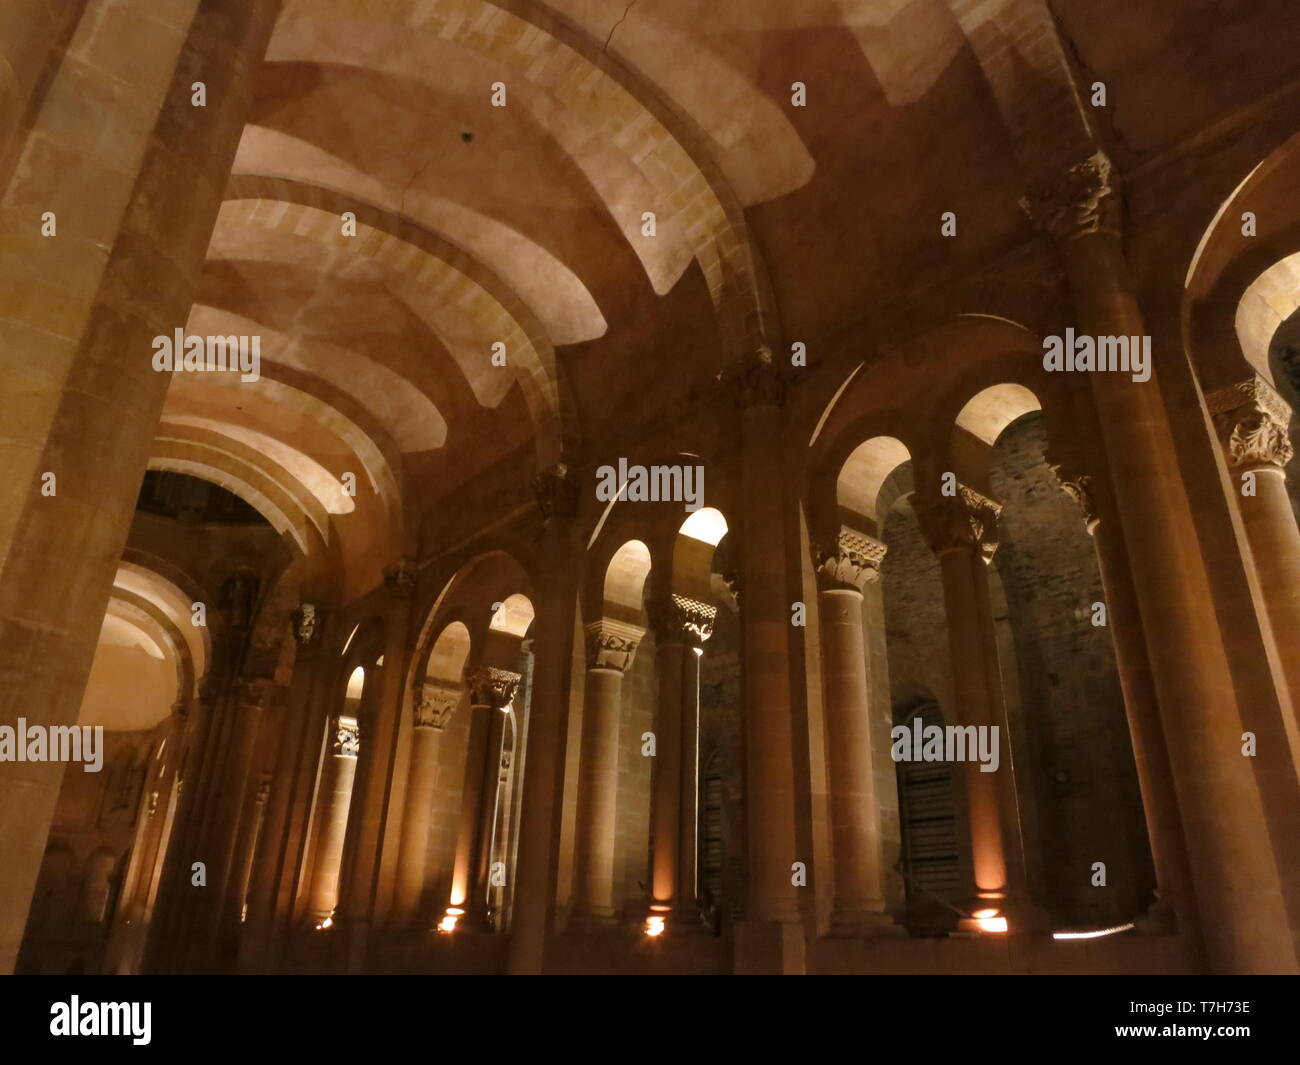 Inside Abbey-Church of Saint-Foy in Conques during the night. A historic town along the Via Podiensis in southern France. - Stock Image